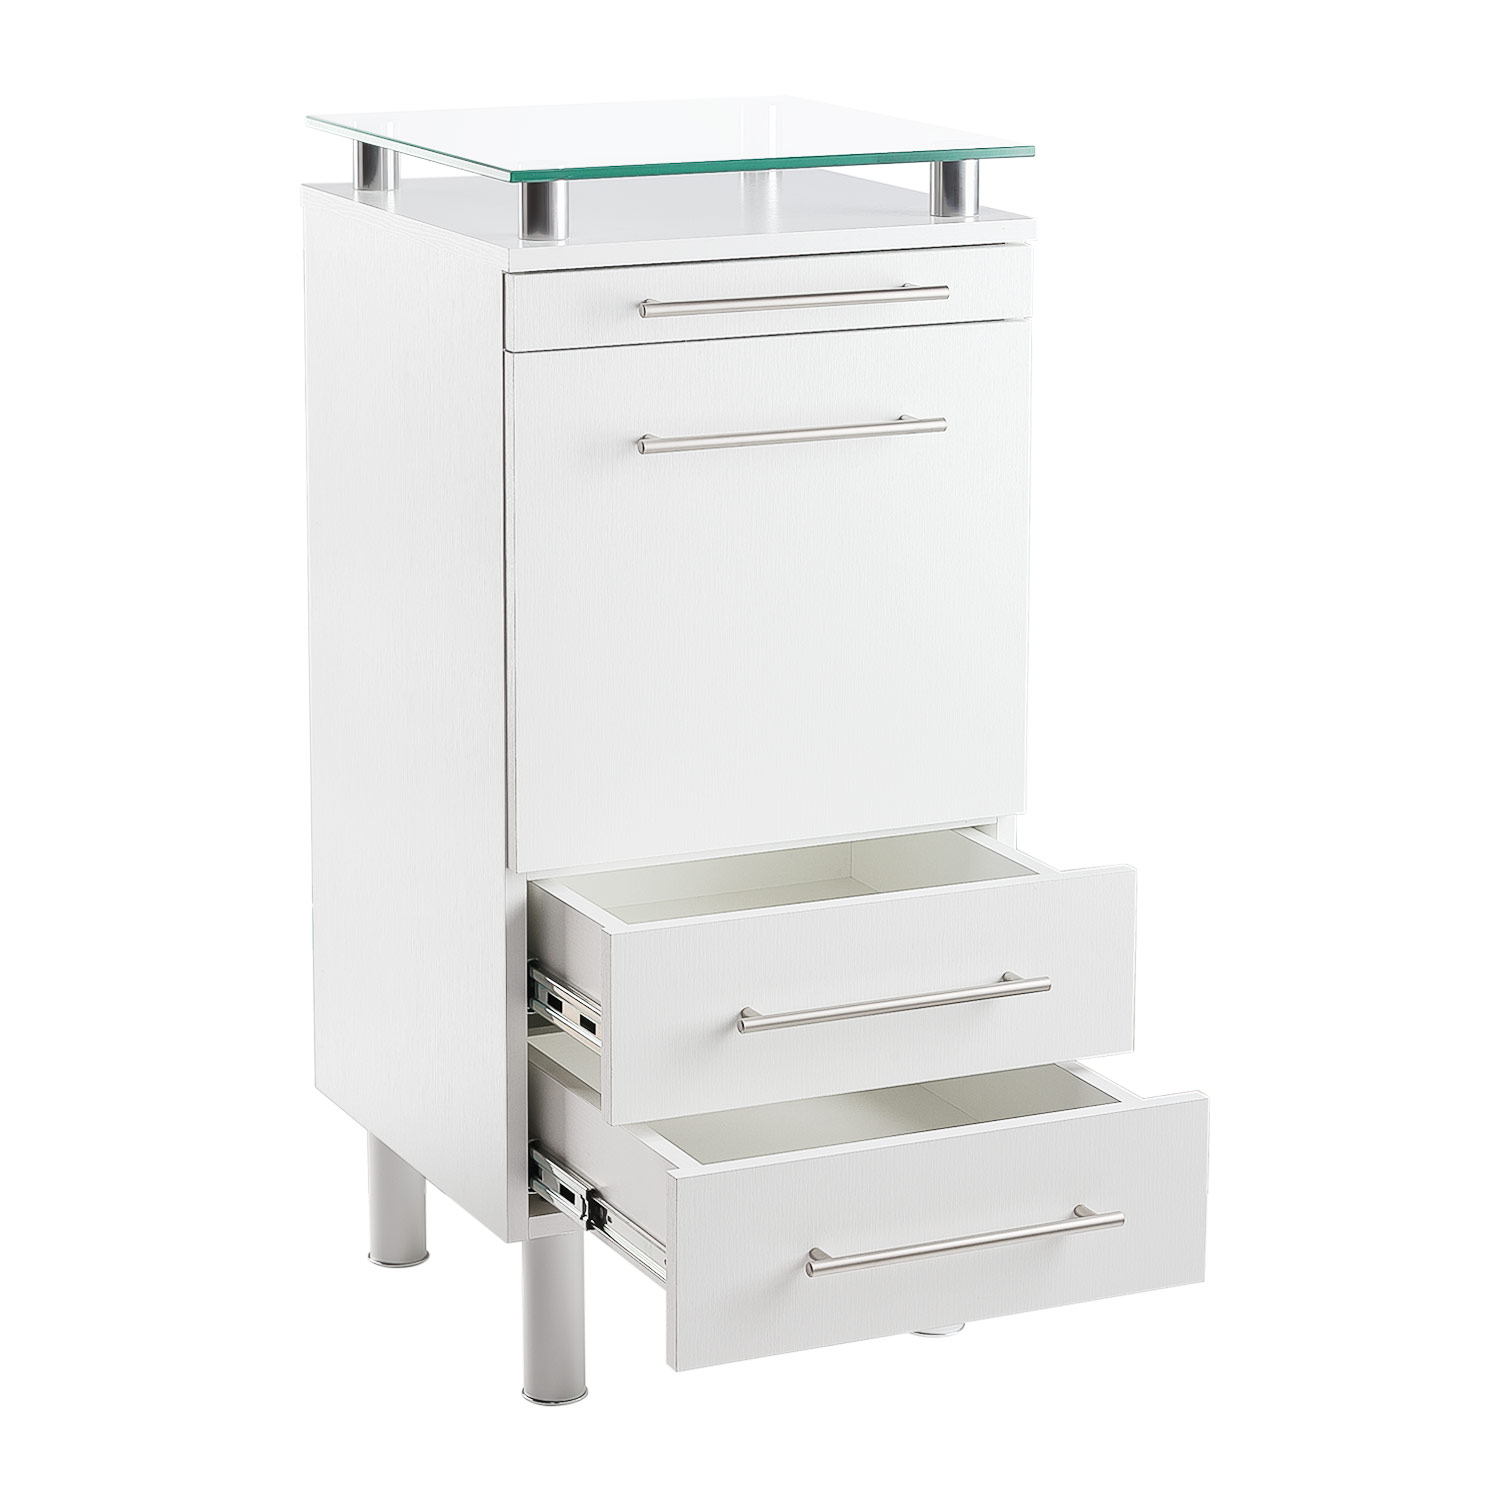 White Amy Salon Styling Station with Tilt-Out Tool Drawer alternative product image 3